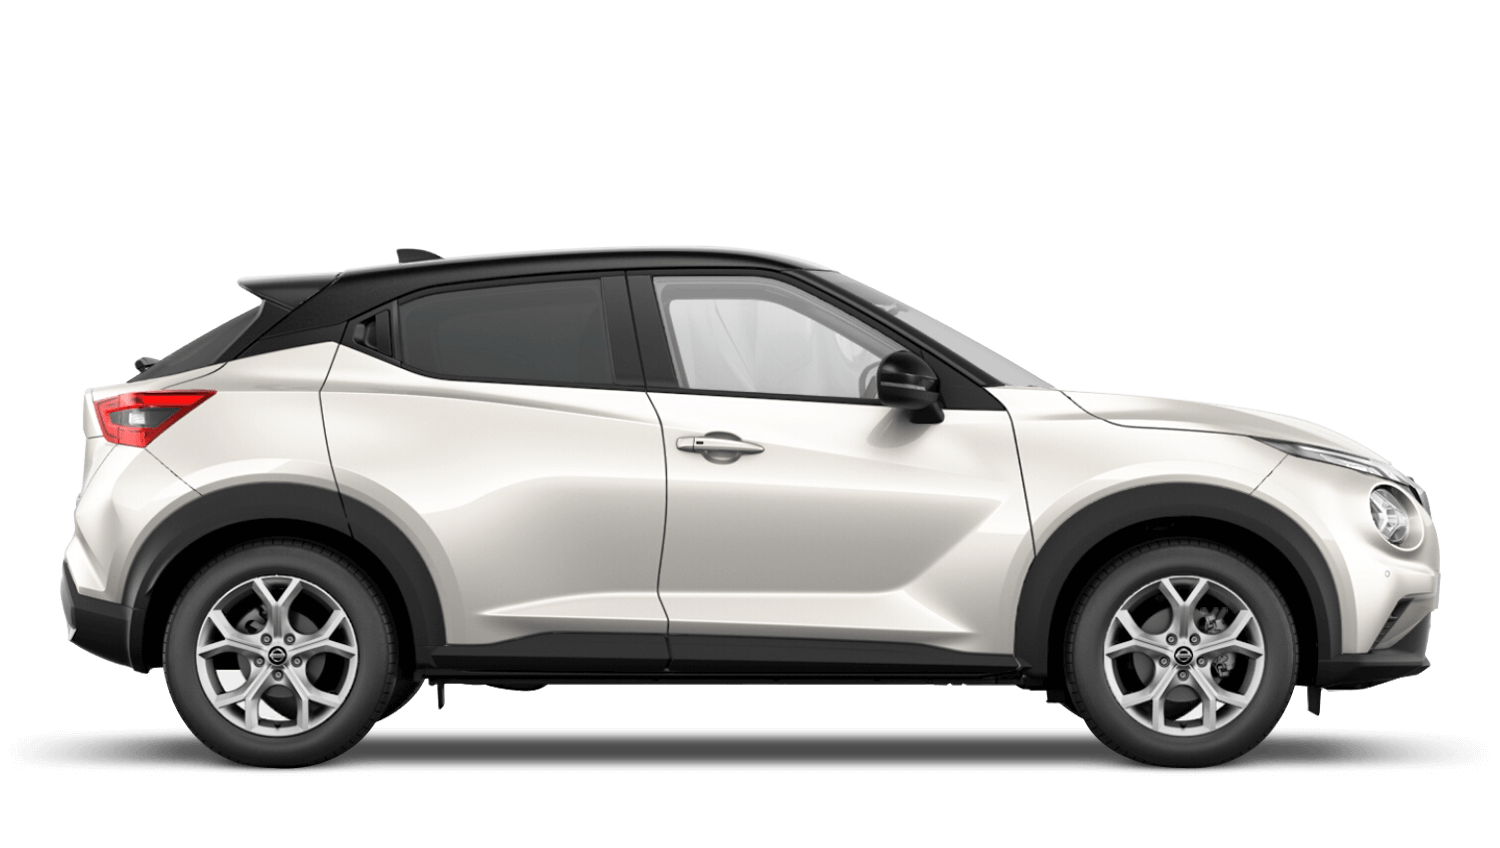 Storm White with Pearl Black Roof Next Generation Nissan Juke